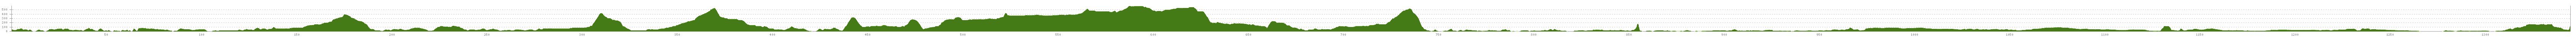 Elevation profile Cycle Tour WOW Cyclothon